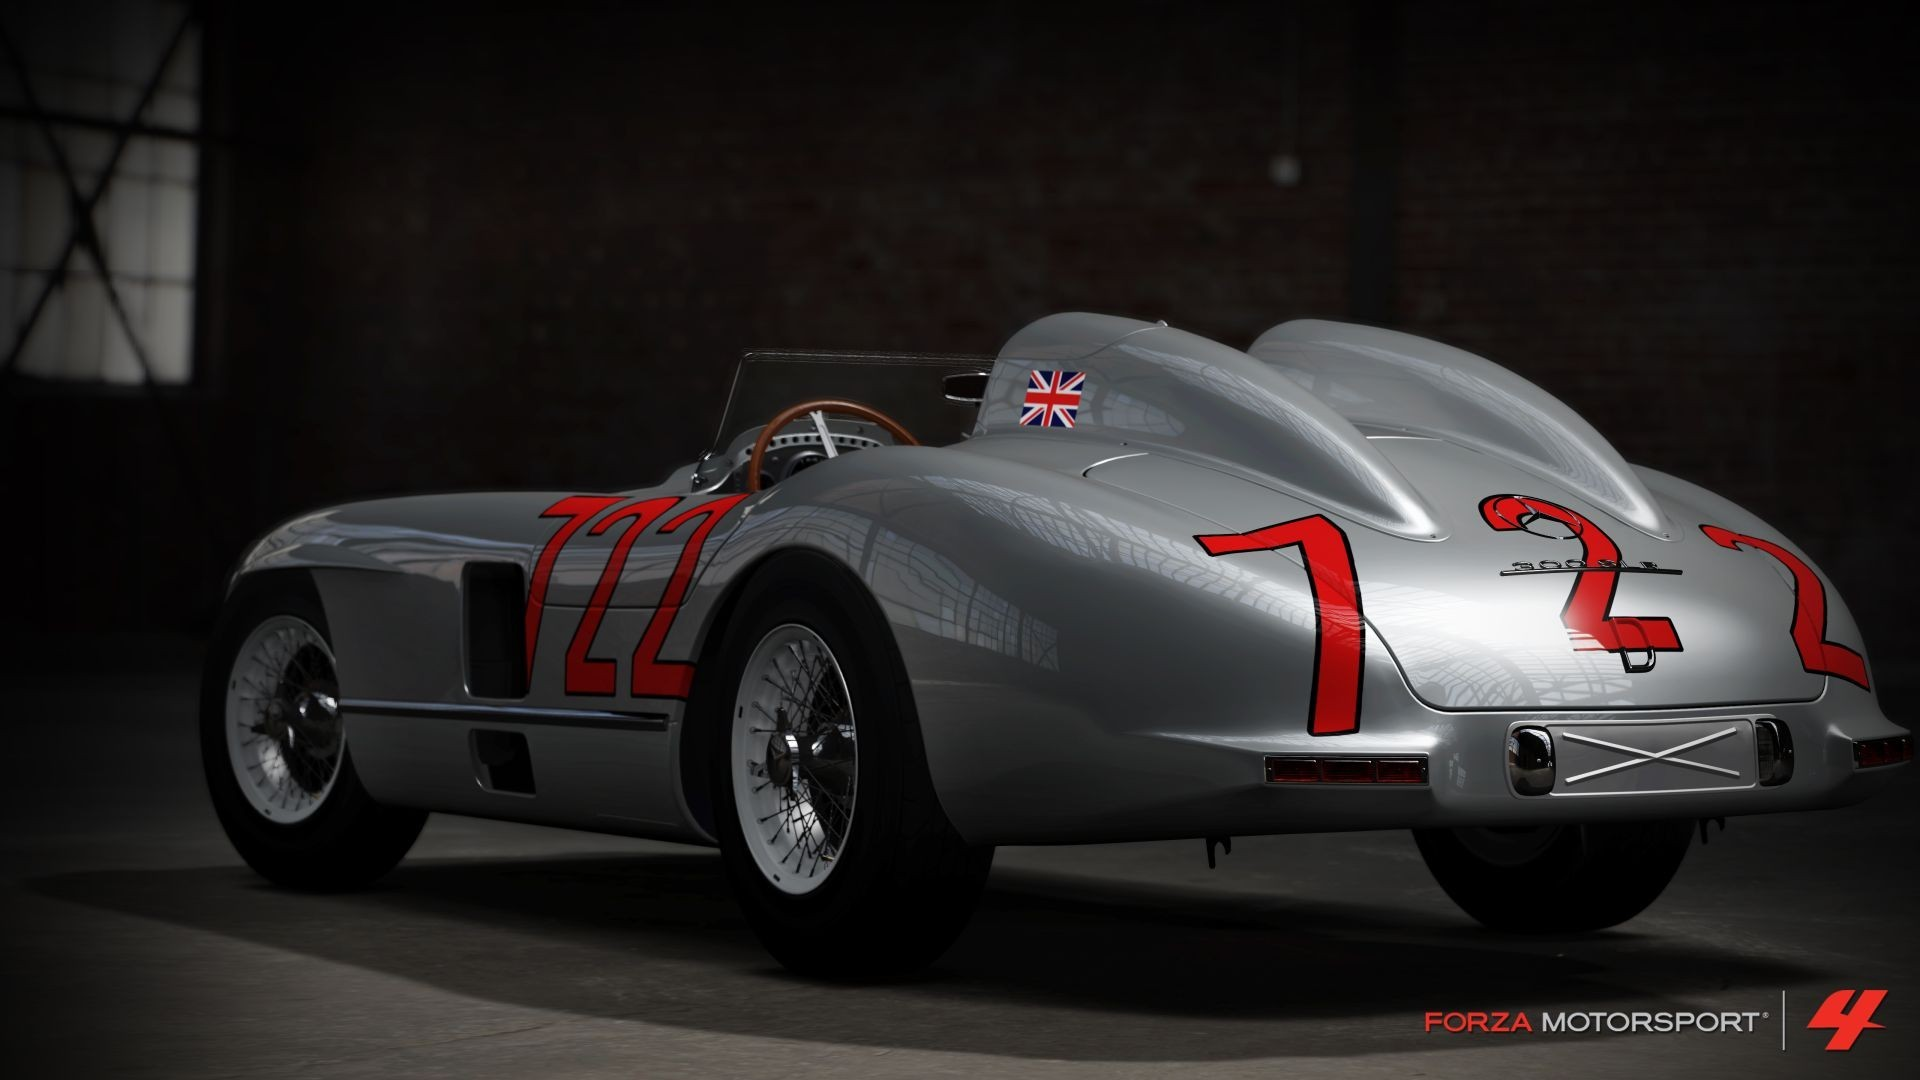 1955 mercedes benz 300slr forza motorsport 4 wallpaper for Mercedes benz motorsport